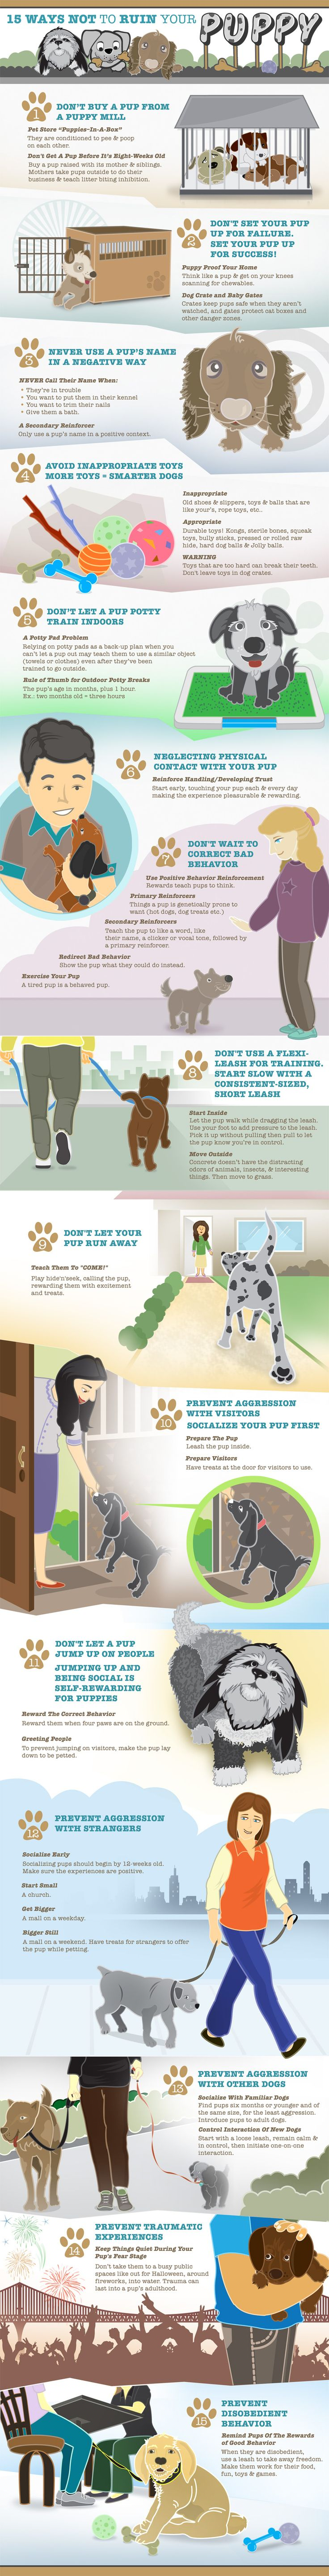 This is a great infographic I found the other day while trolling Pinterest. What do you think?